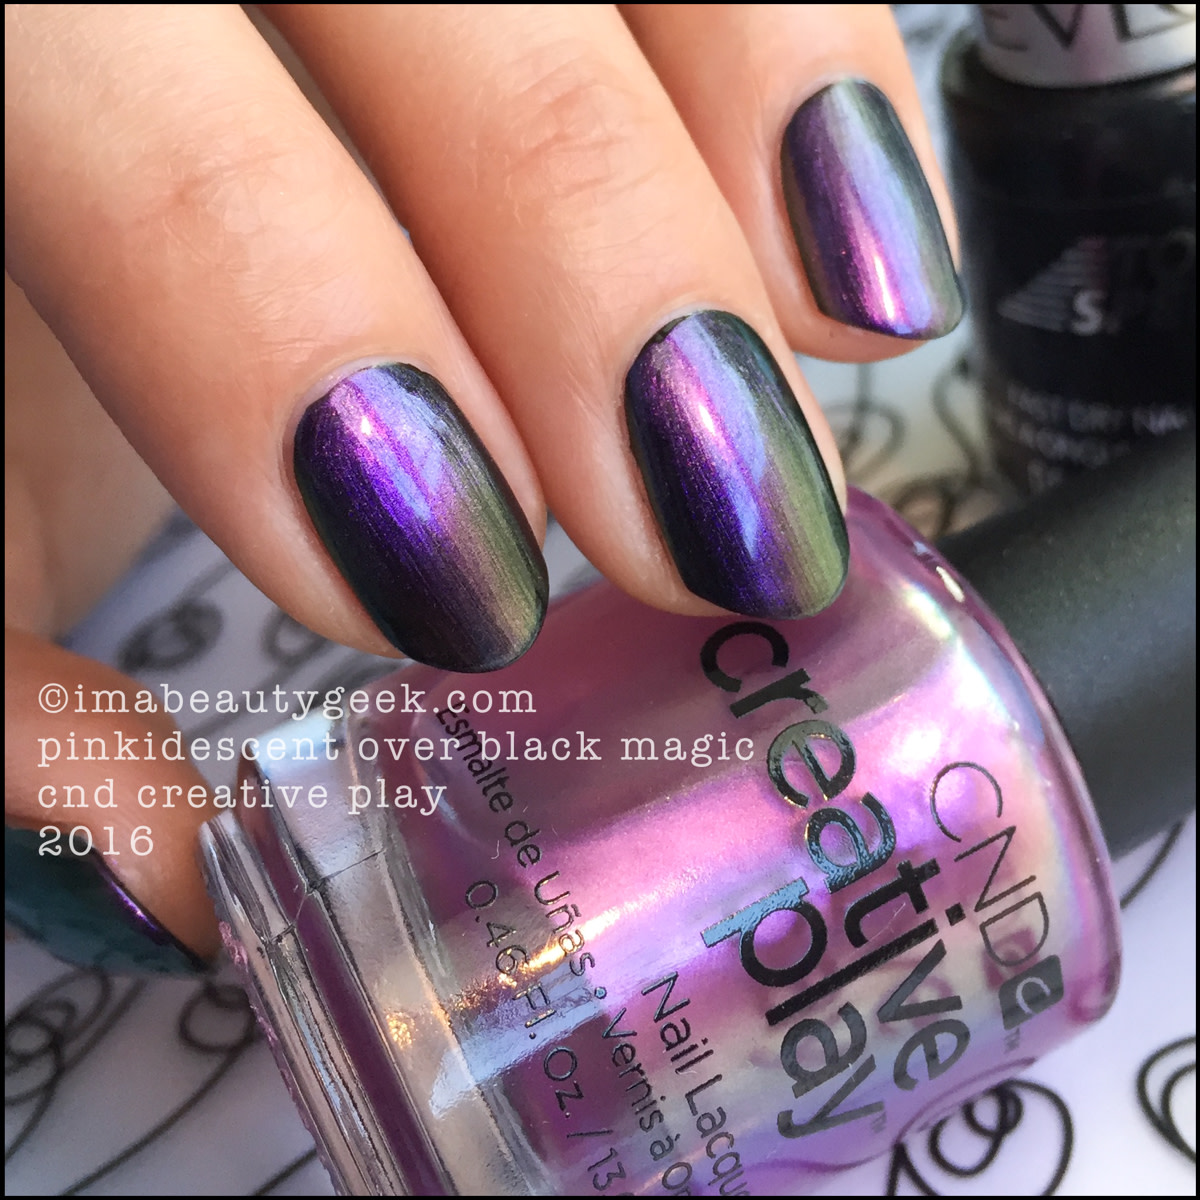 CND Creative Play Pinkidescent over Black Magic_CND Creative Play Nail Polish Swatches